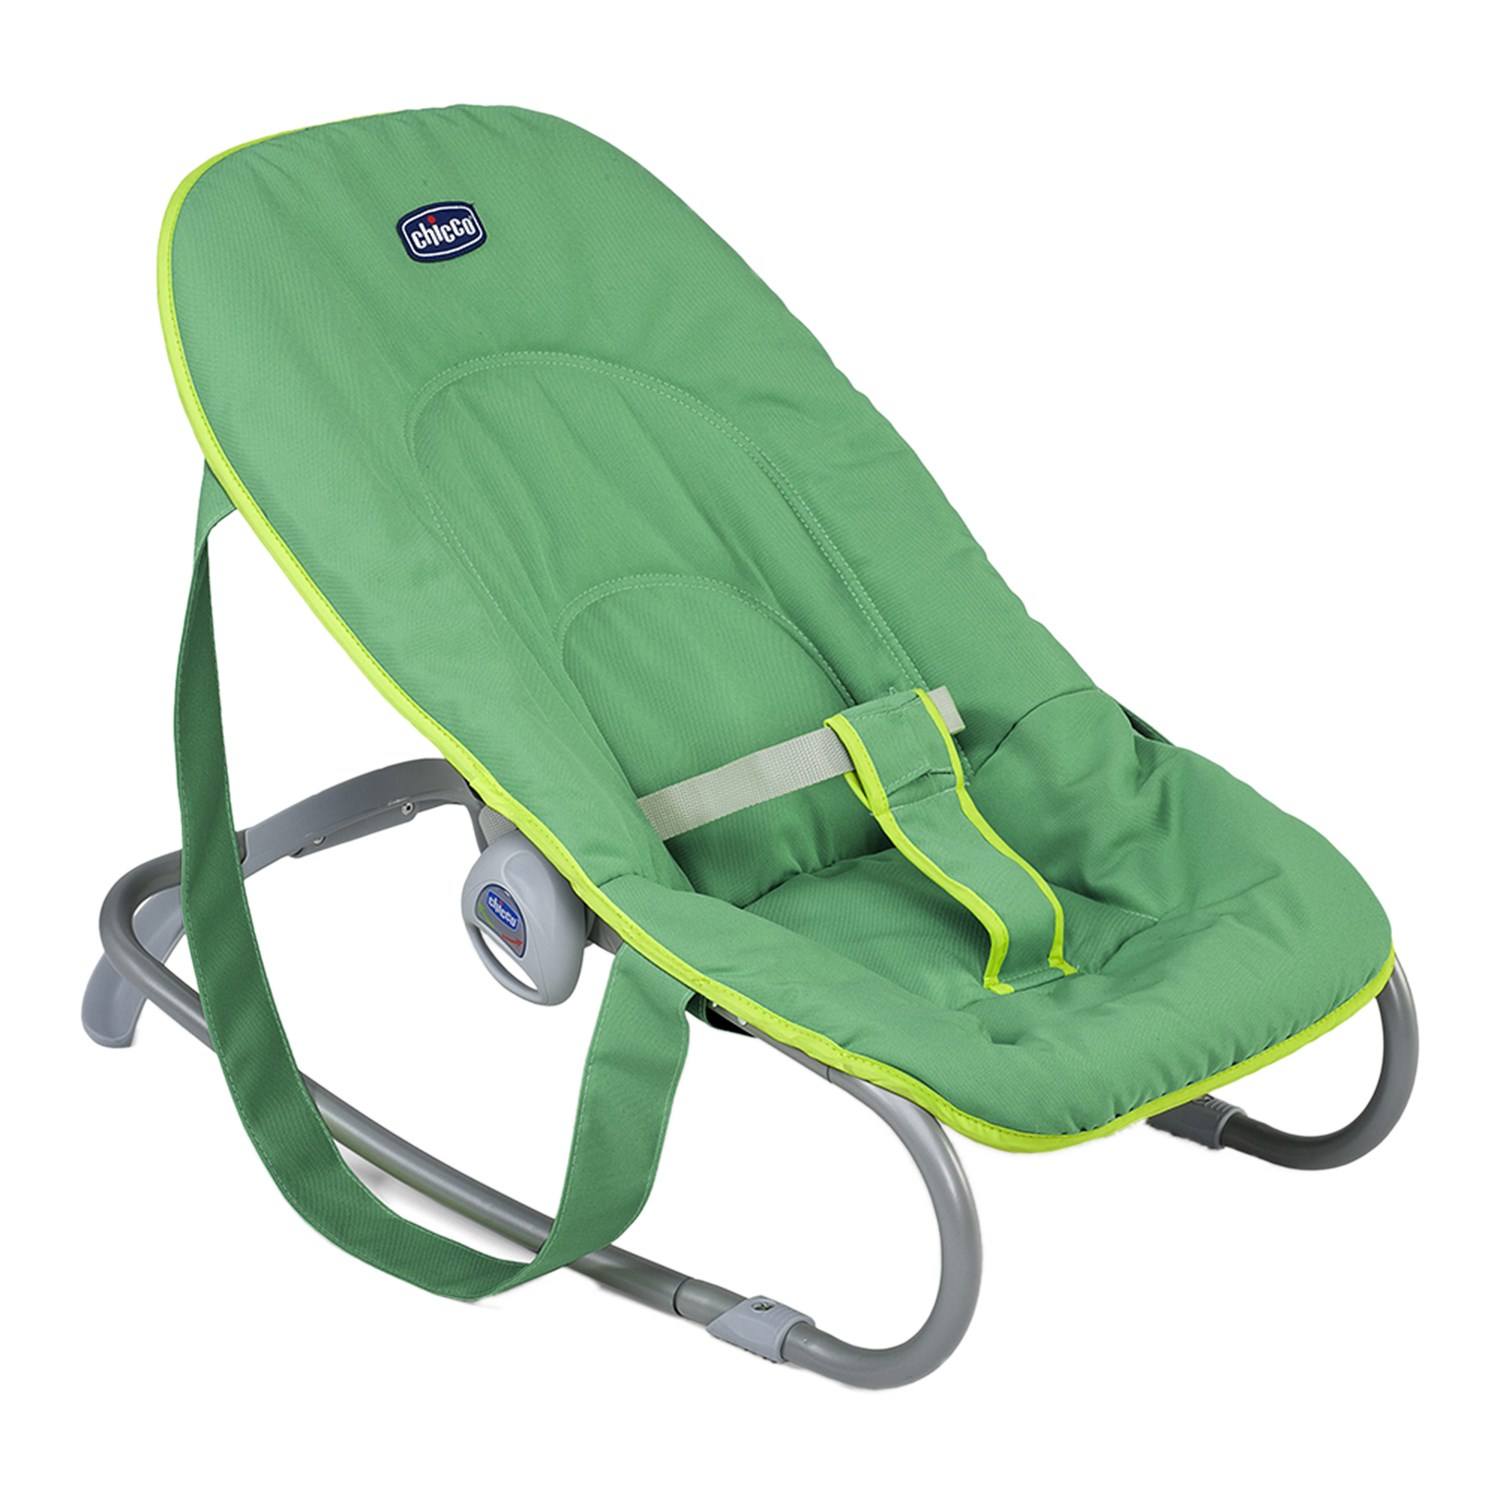 Chicco 12790 Easy Relax Spring Bouncer Green